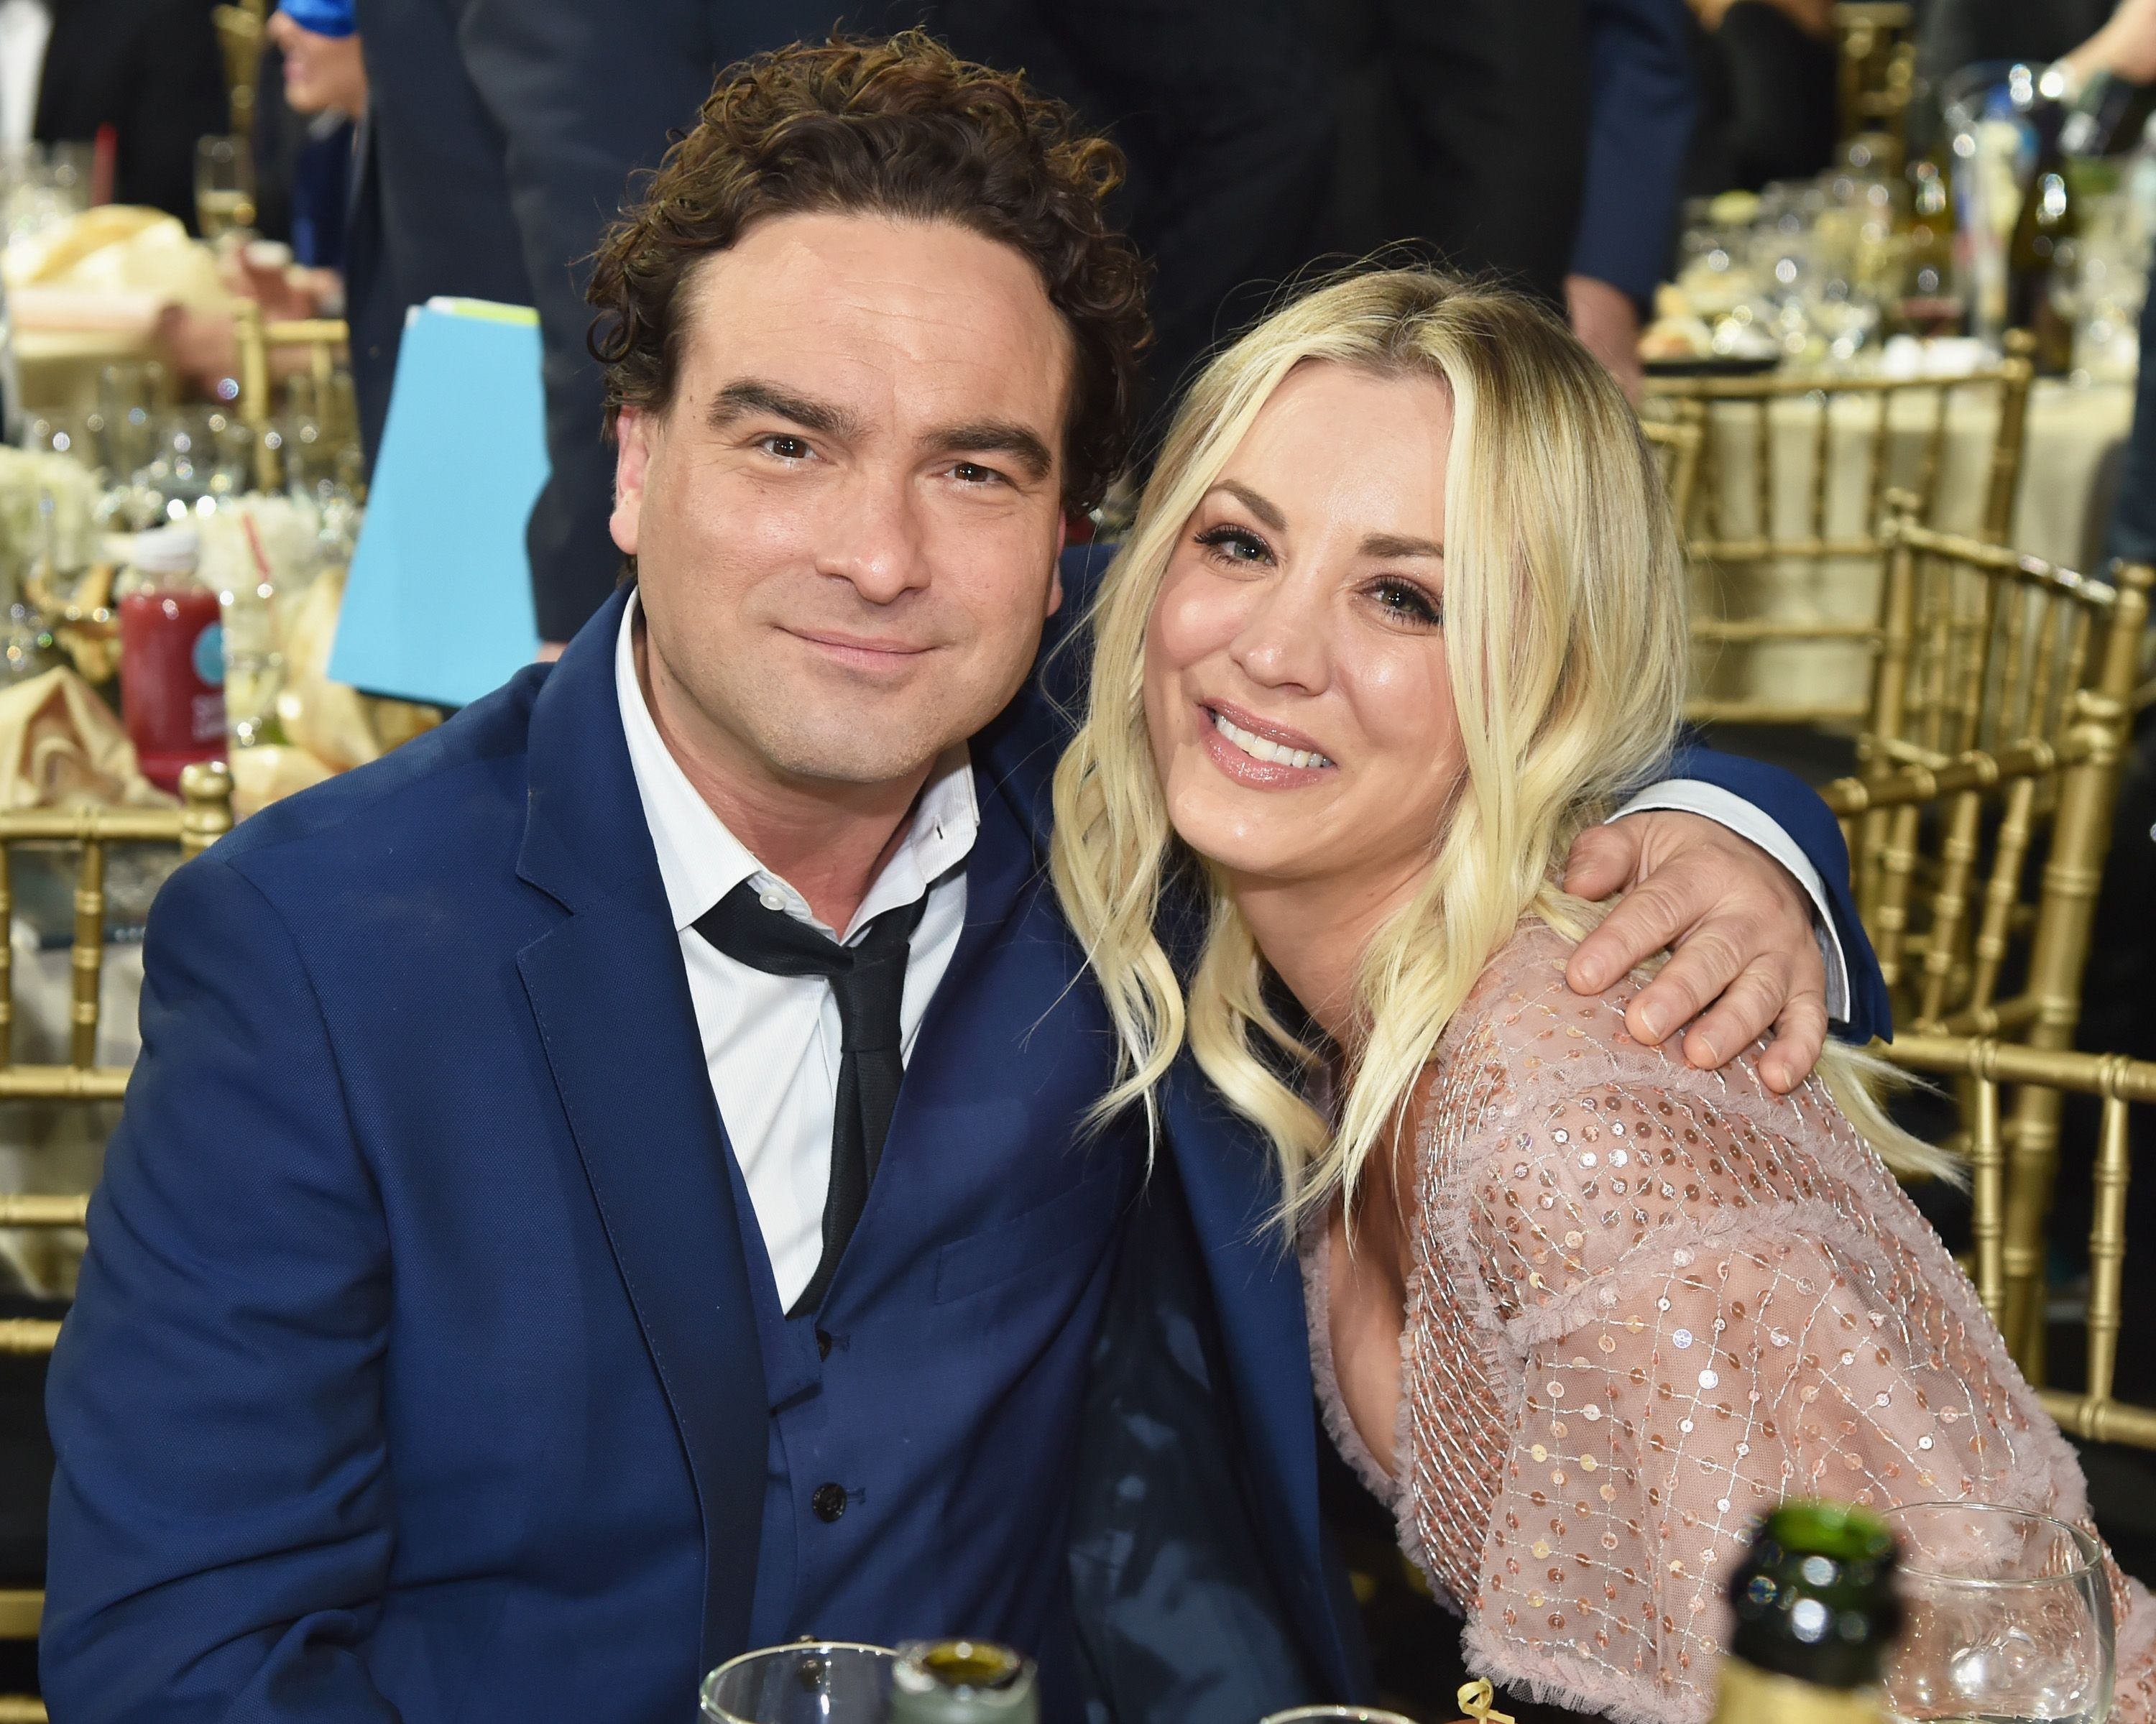 Johny Galecki and Kaley Cuoco used to date in real life / Getty Images